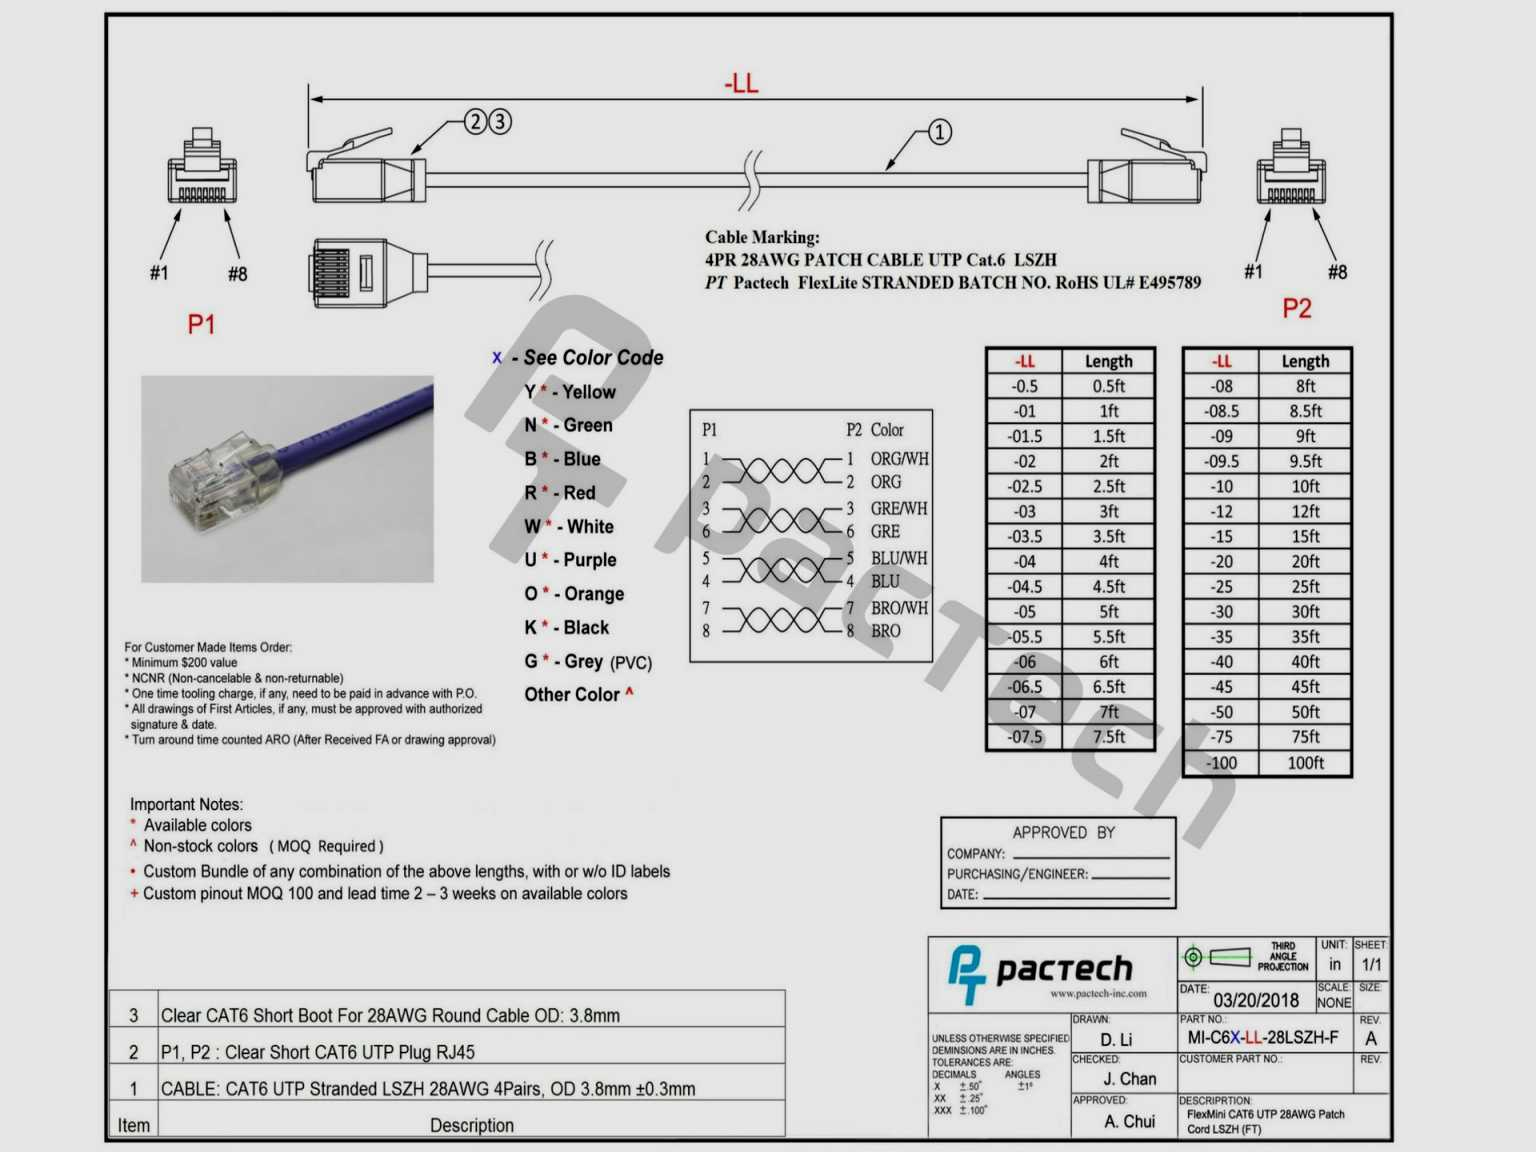 poe wiring schematic wiring diagrampower over ethernet poe pinout diagram pinoutguidecom electricalcat6 poe pinout diagram wiring schematic diagramcat5 poe wiring